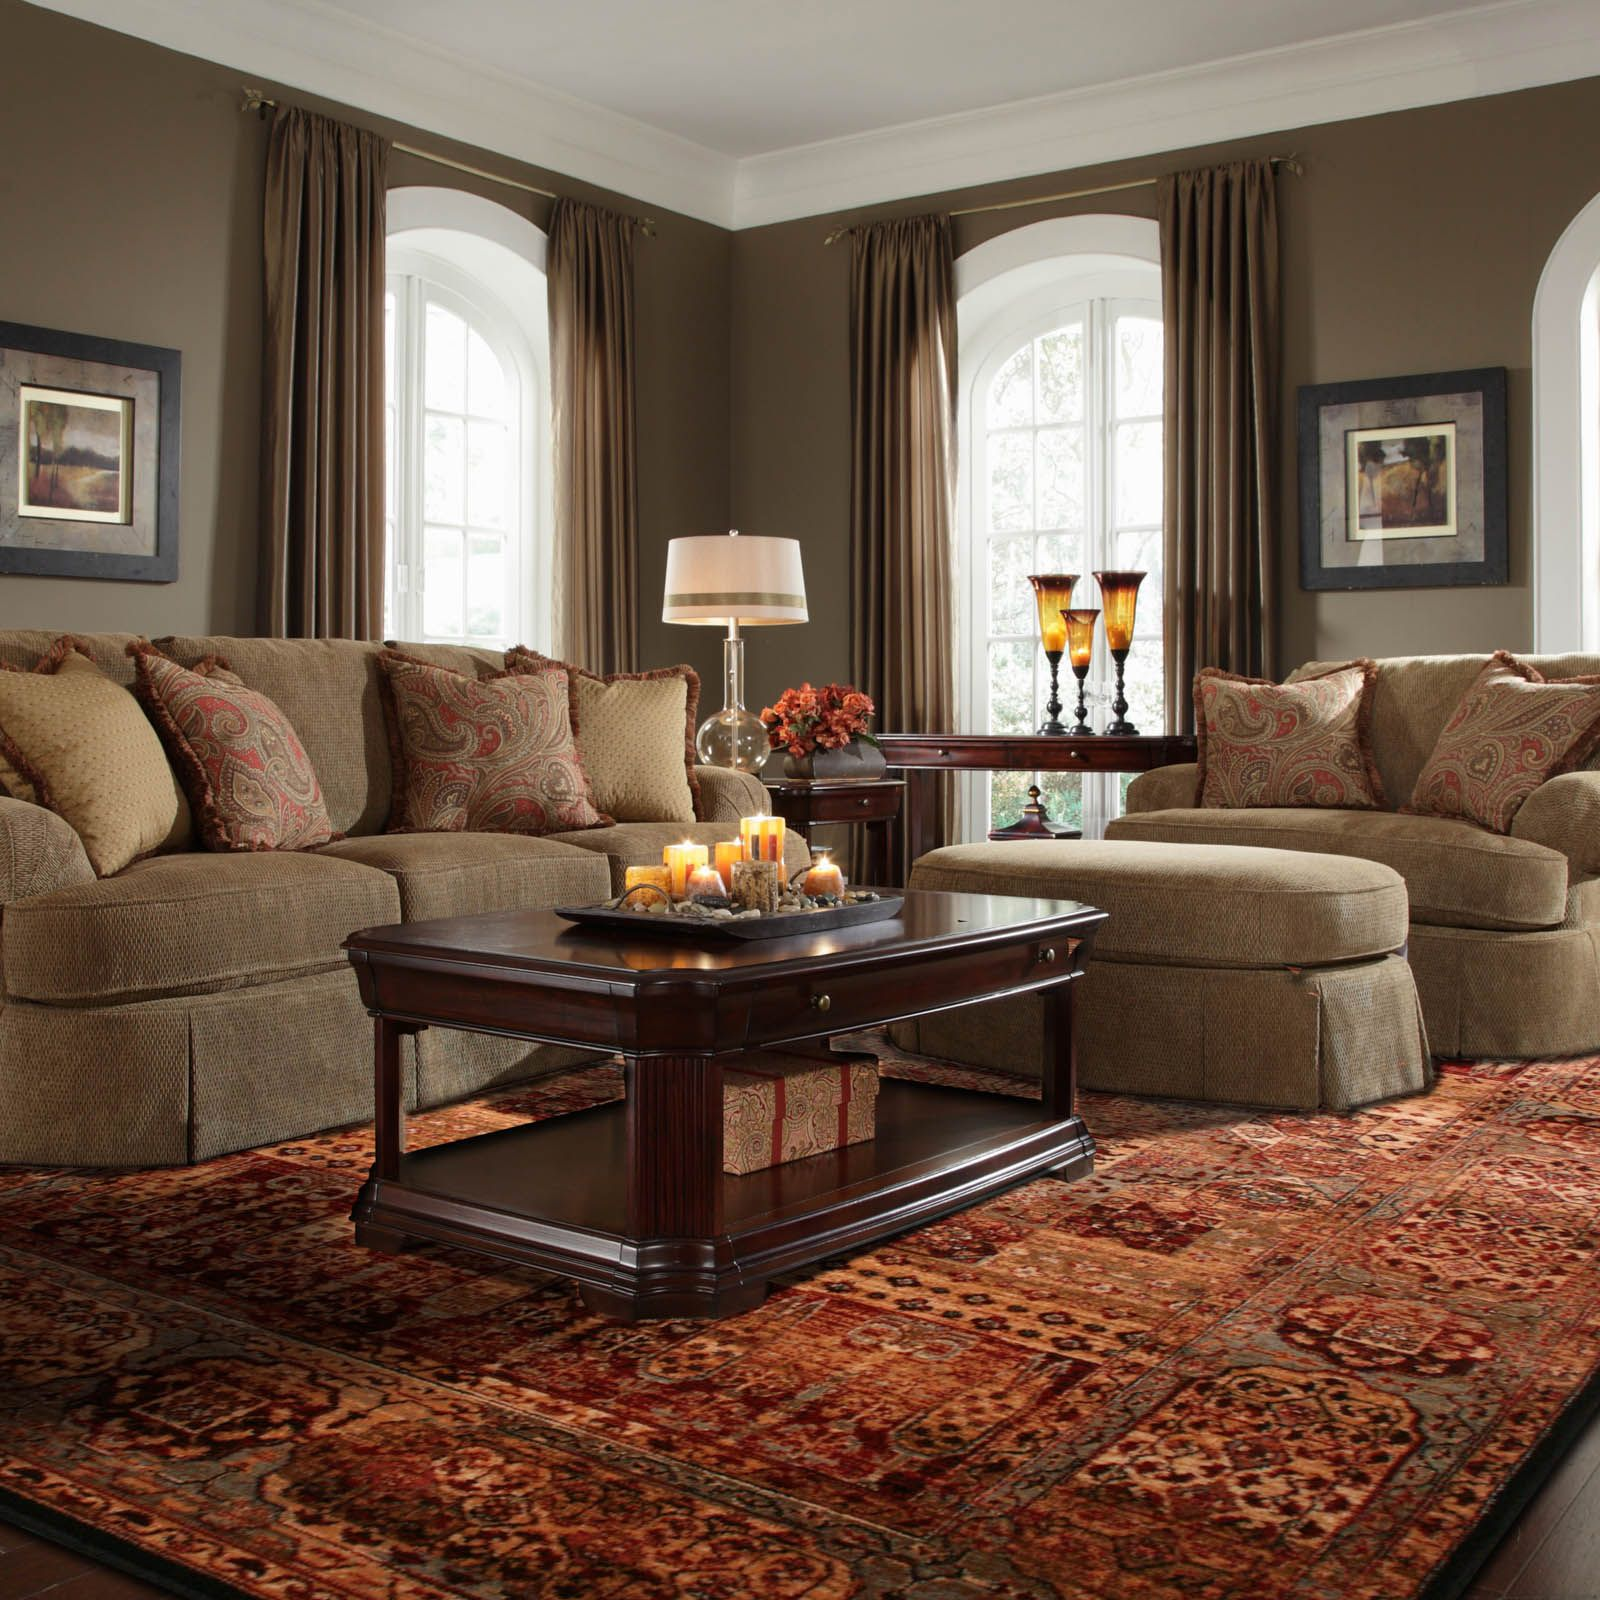 Unique Living Room Furniture Sets: A Unique Medallion Design With Intricate Detailing In Warm